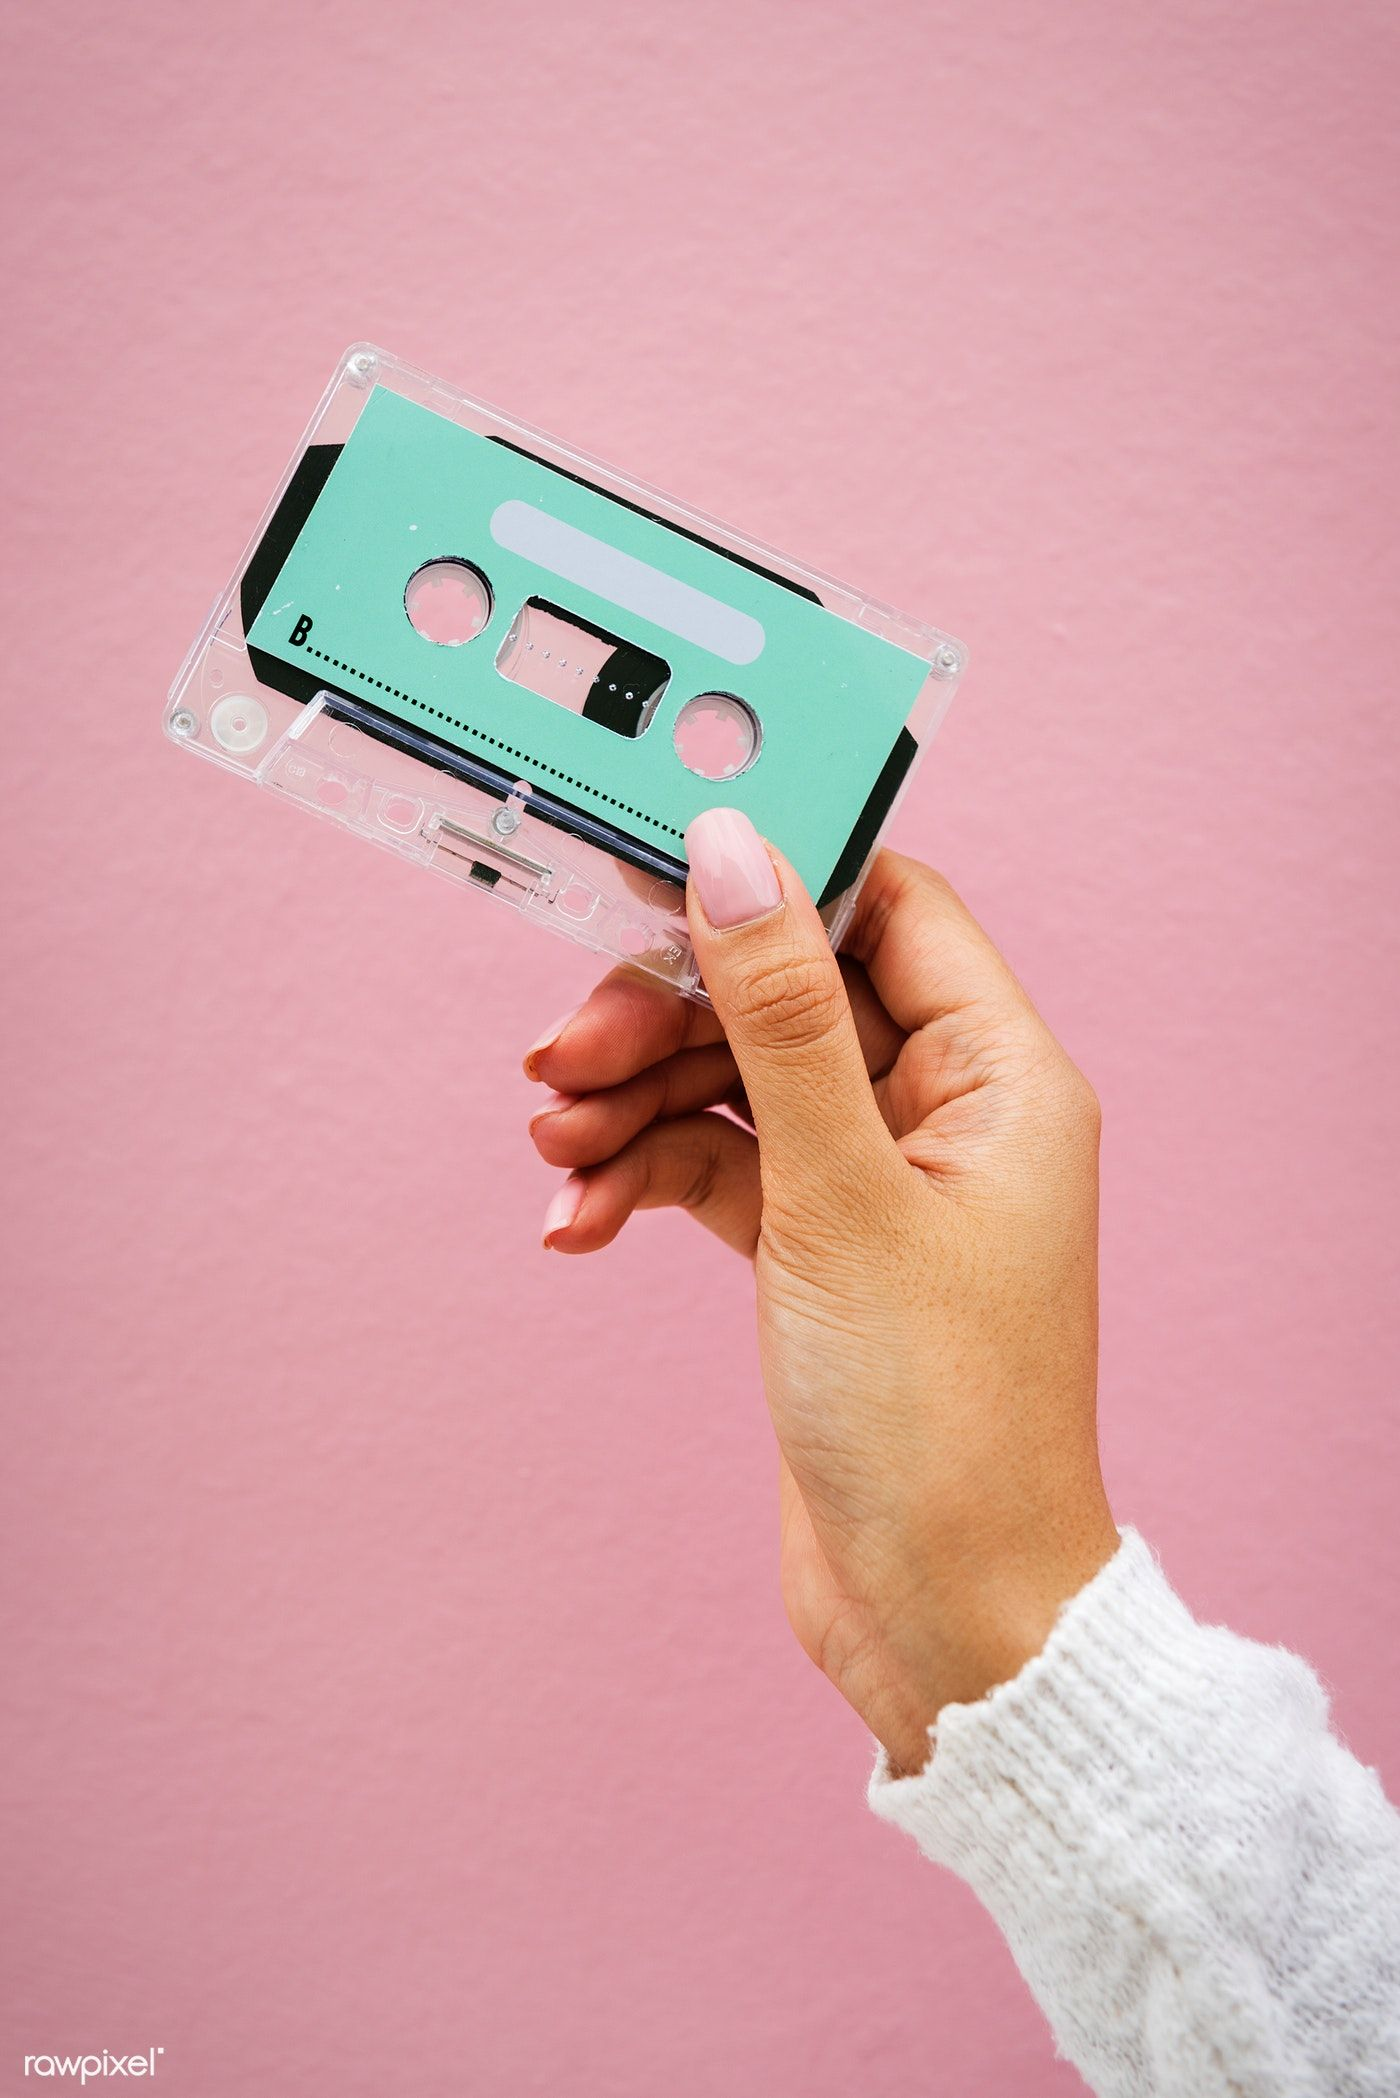 Download Premium Image Of Closeup Of Hand Holding Design Space Cassette Cassette How To Draw Hands Cassette Tapes